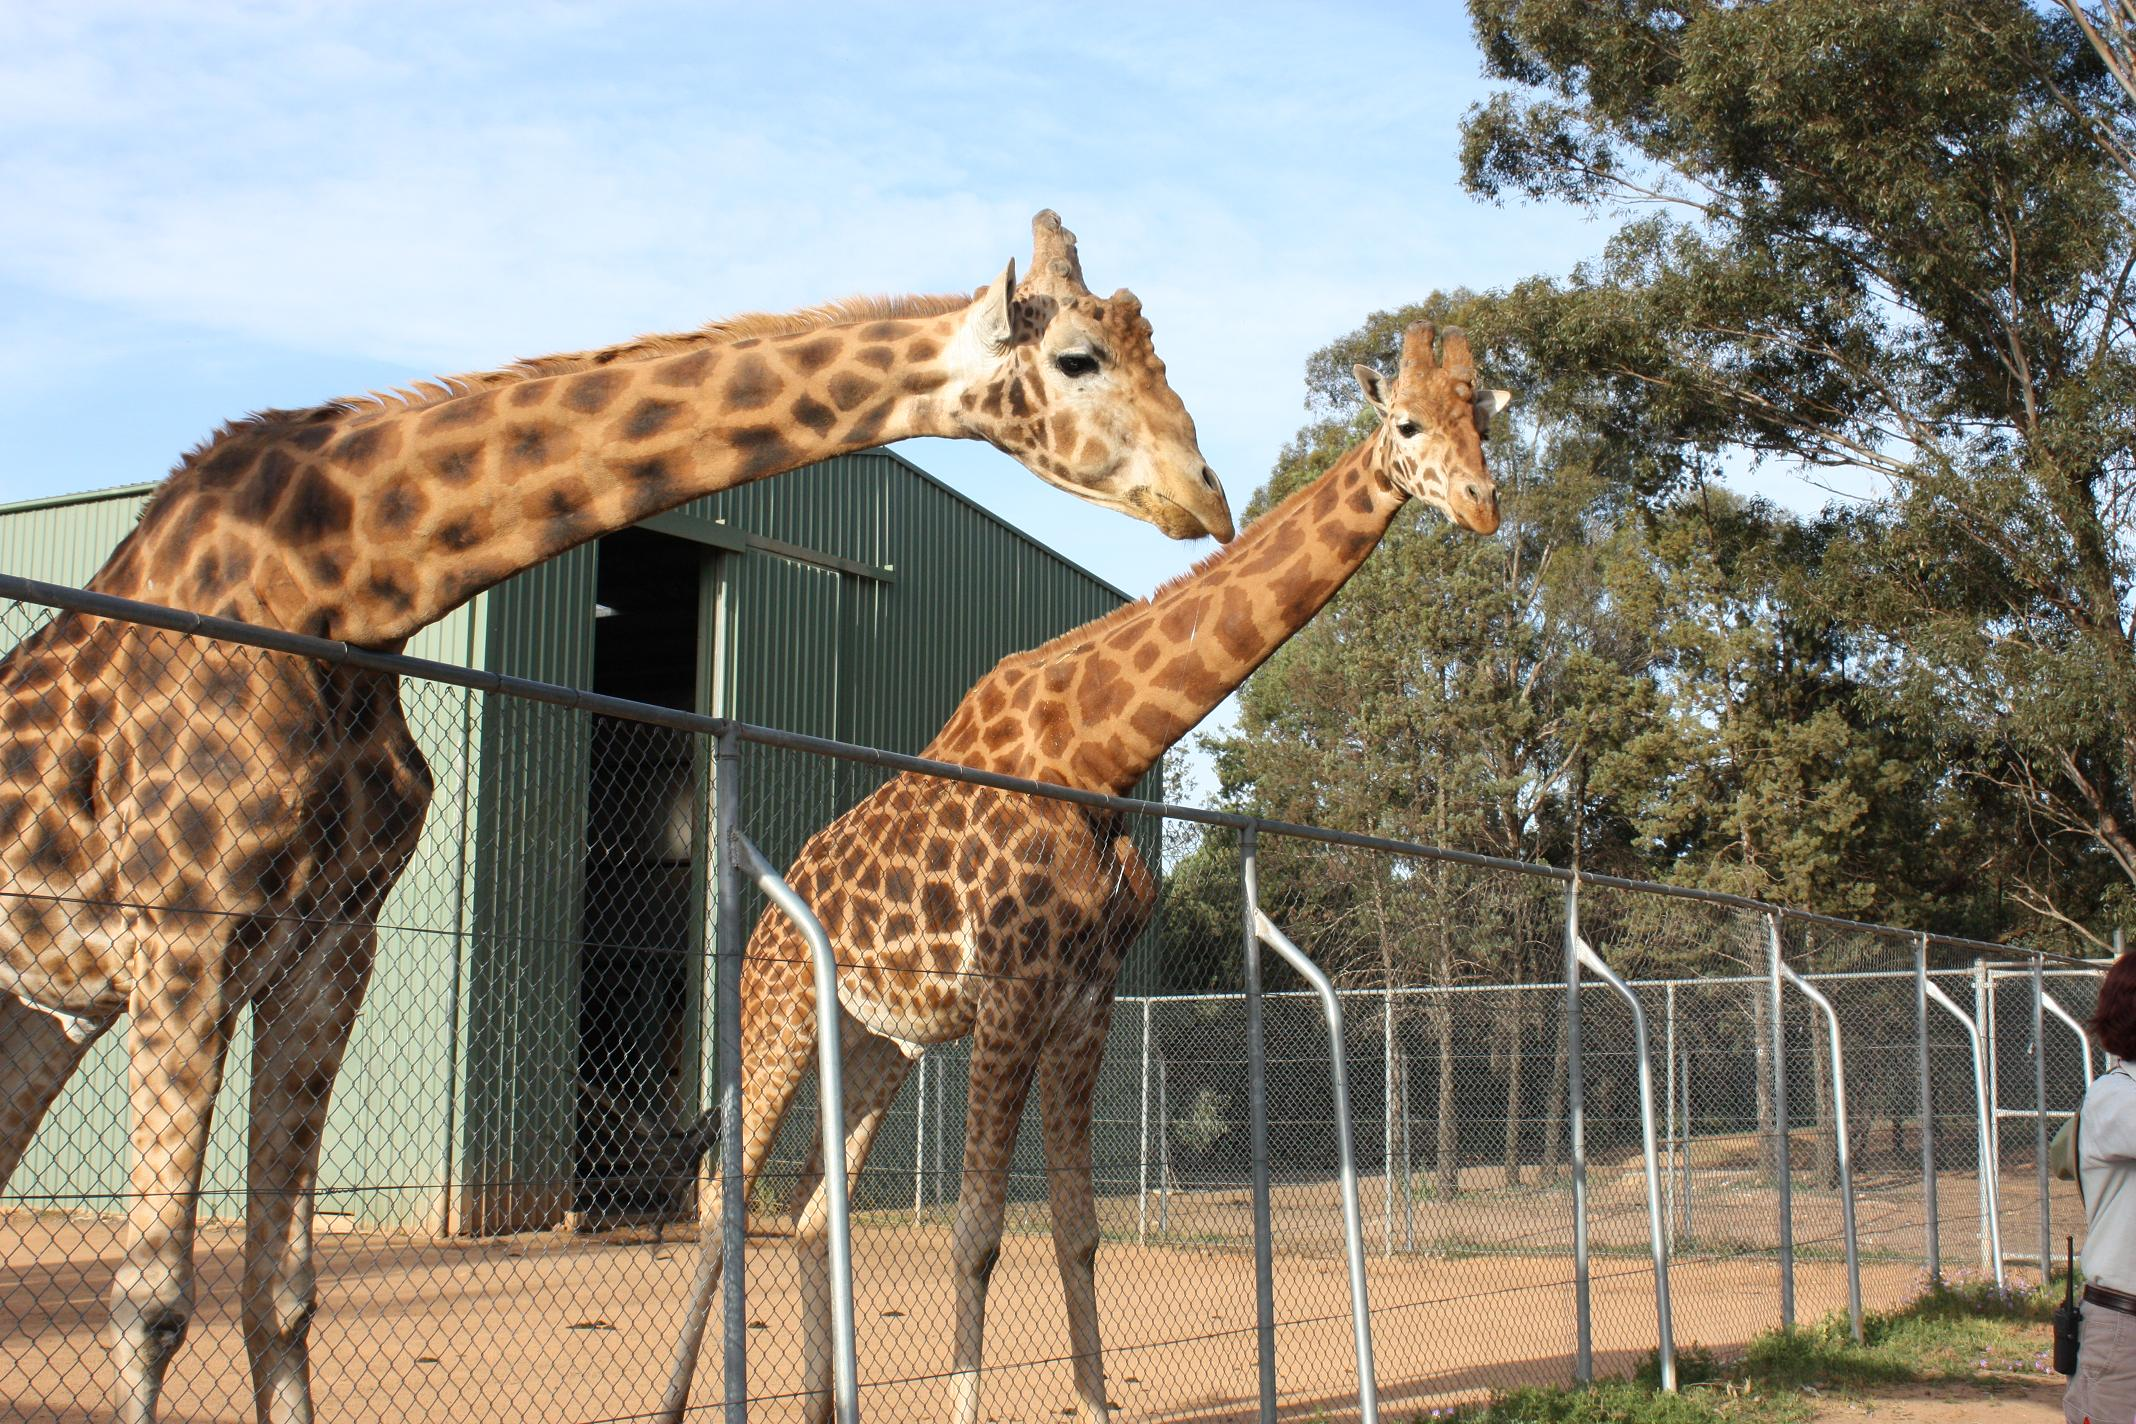 Dubbo Australia  city photos gallery : ... Taronga Western Plains Zoo, near Dubbo, New South Wales, Australia 8a